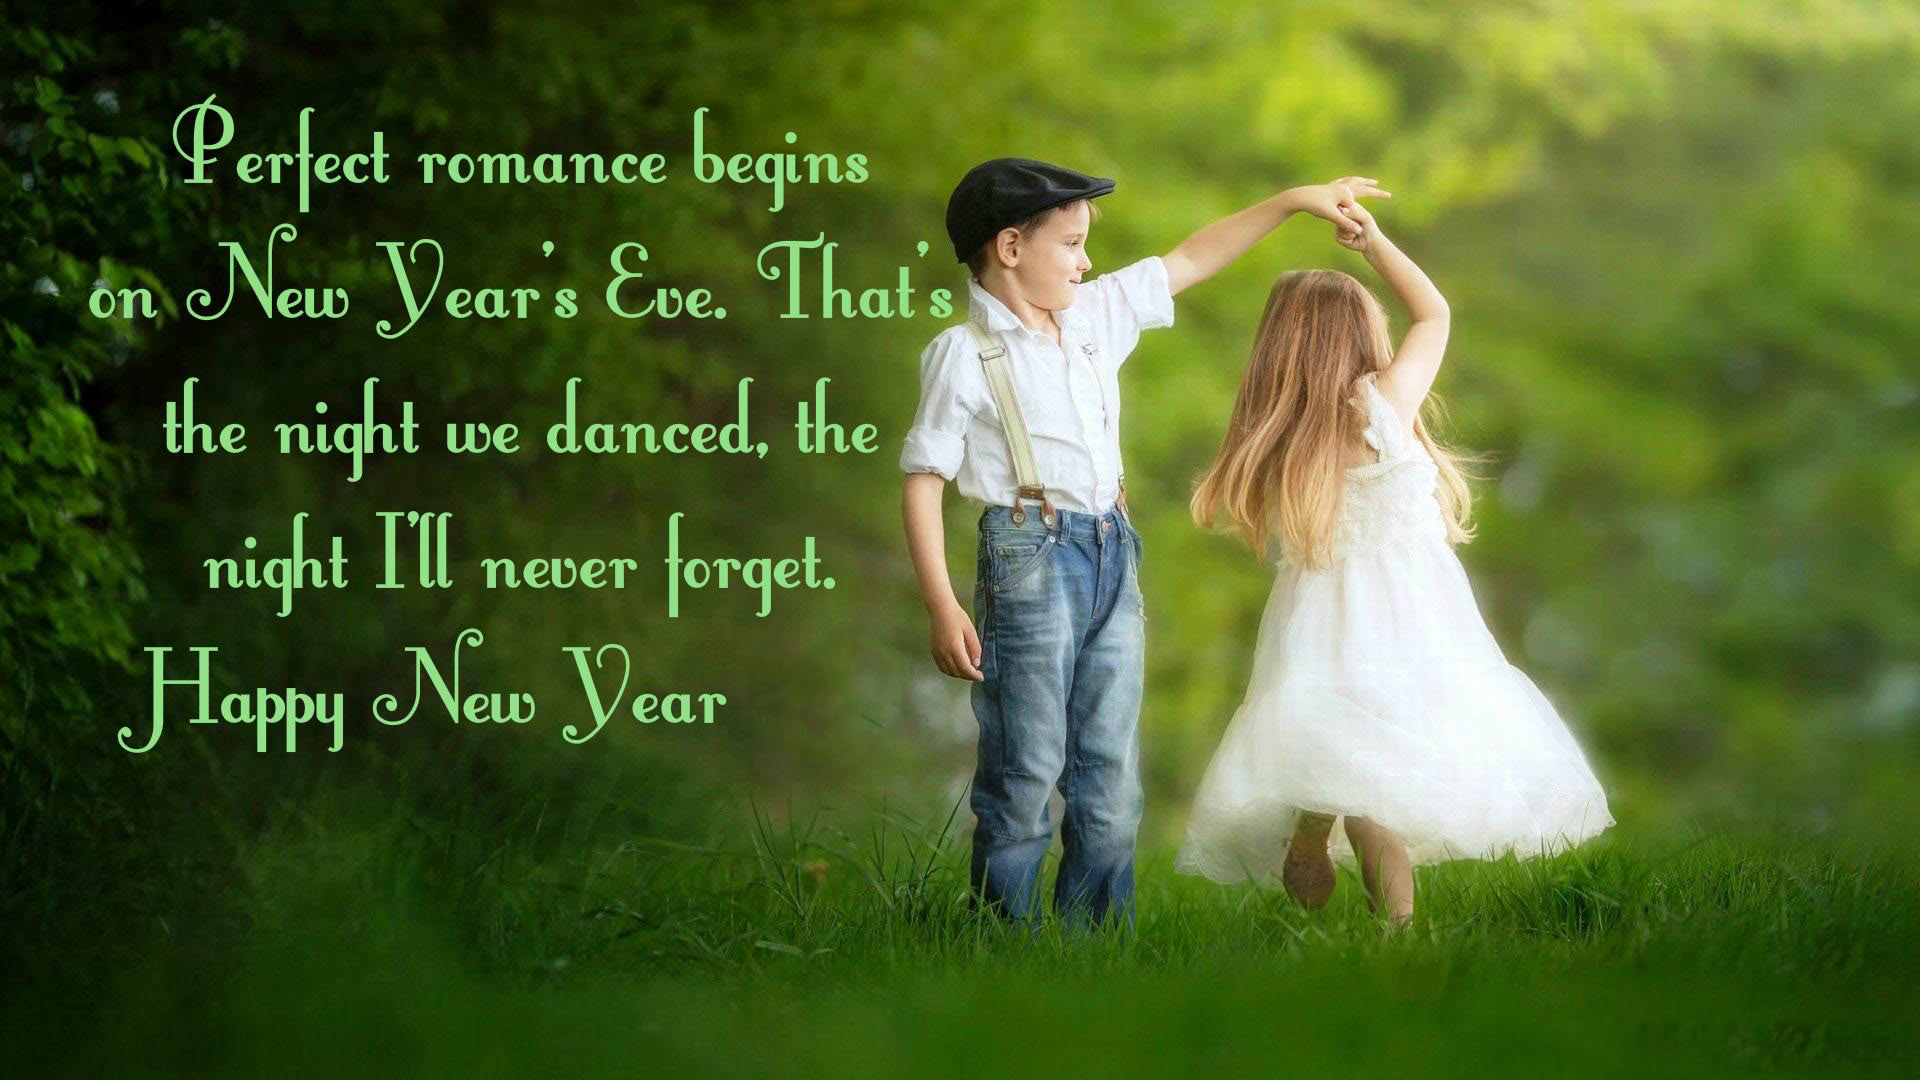 Happy New Year Wishes For Love Romantic Wallpaper - Hd Cute Baby Love Couple - HD Wallpaper